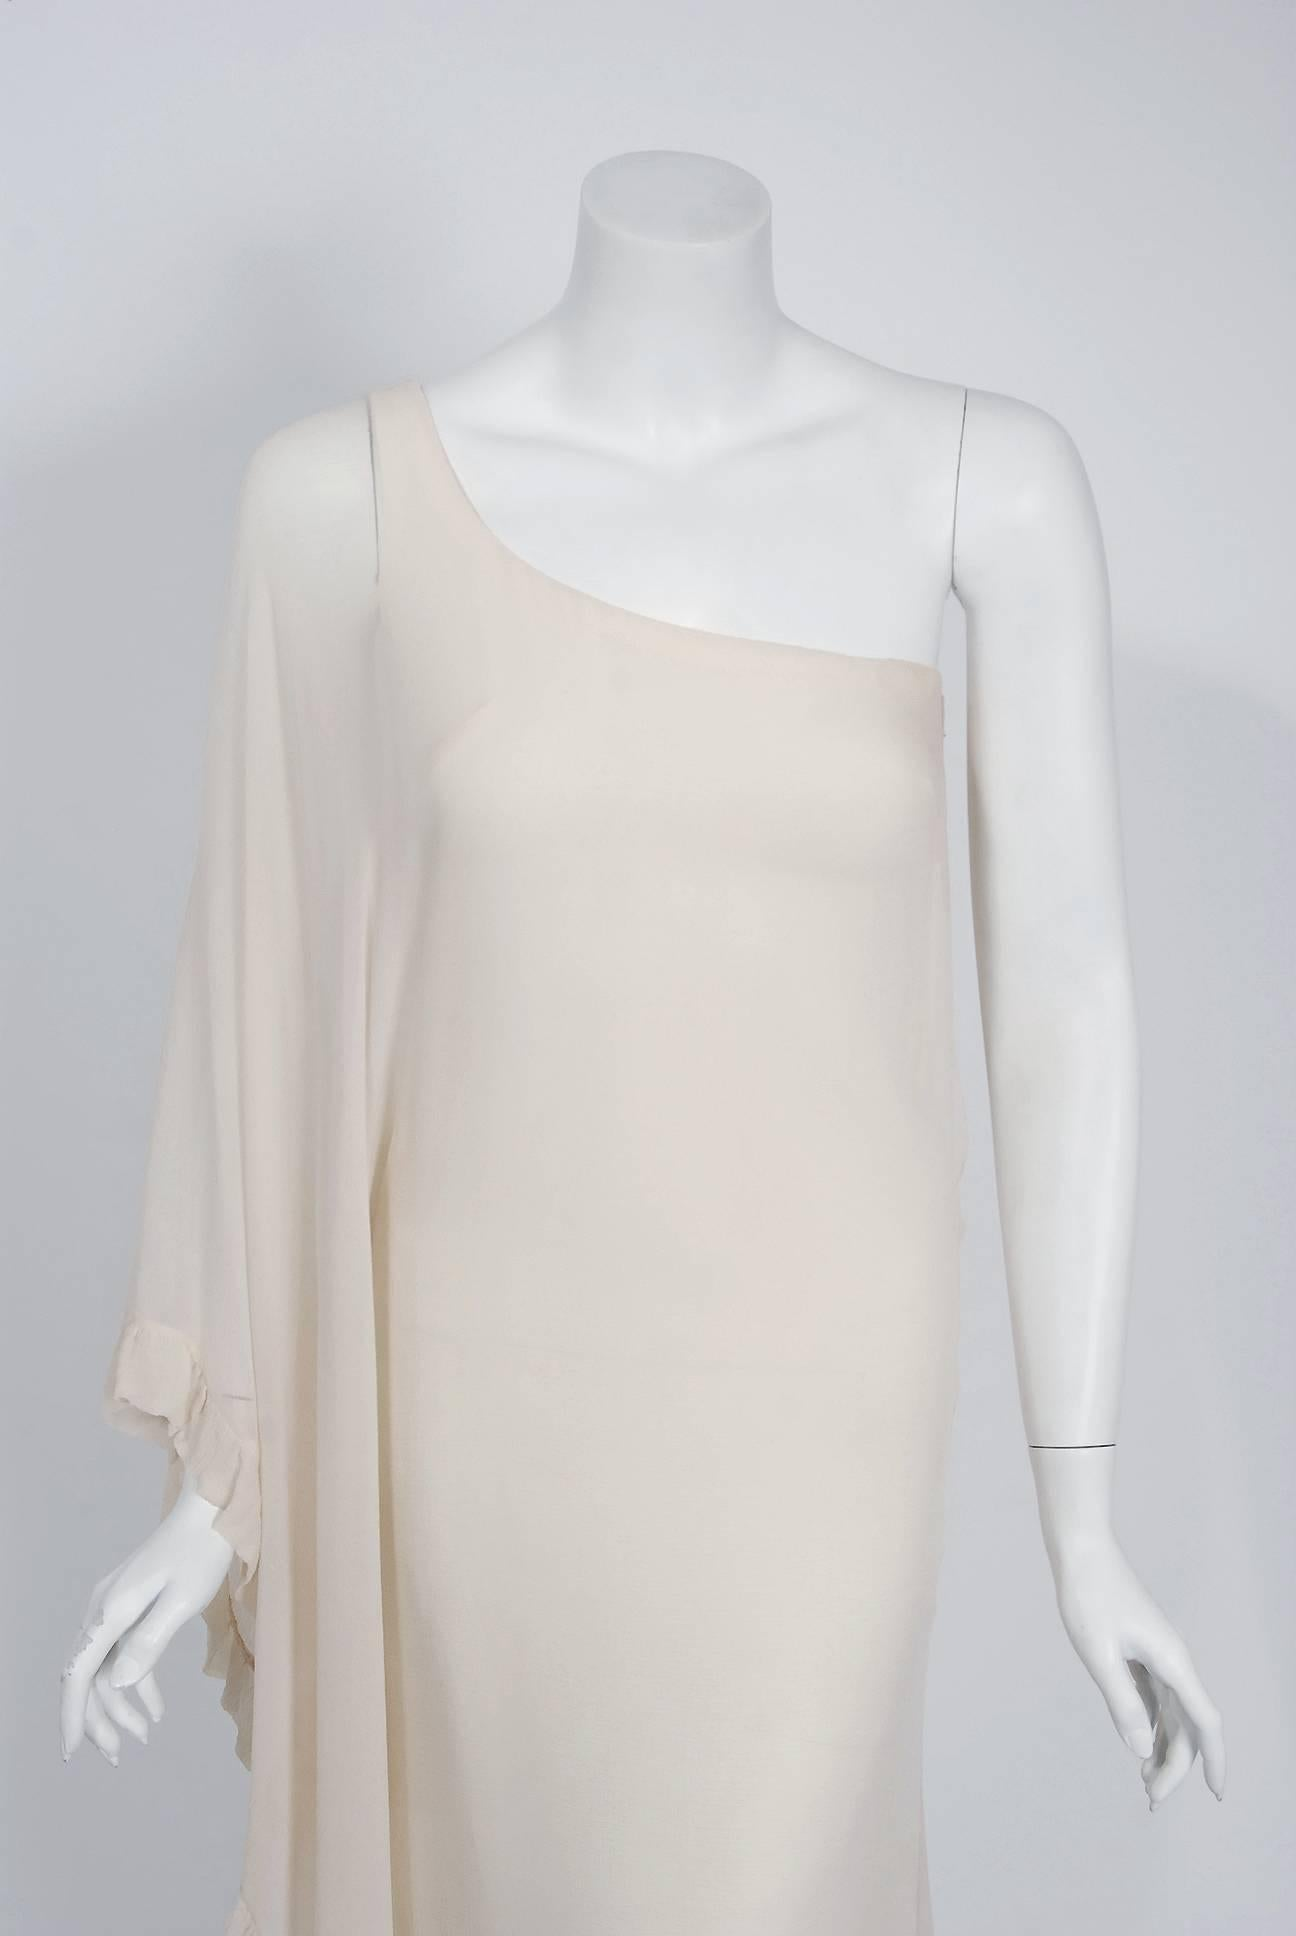 953ed25d49905 1975 Loris Azzaro Couture Ivory Silk Crepe One-Shoulder Goddess Caftan Gown  For Sale at 1stdibs